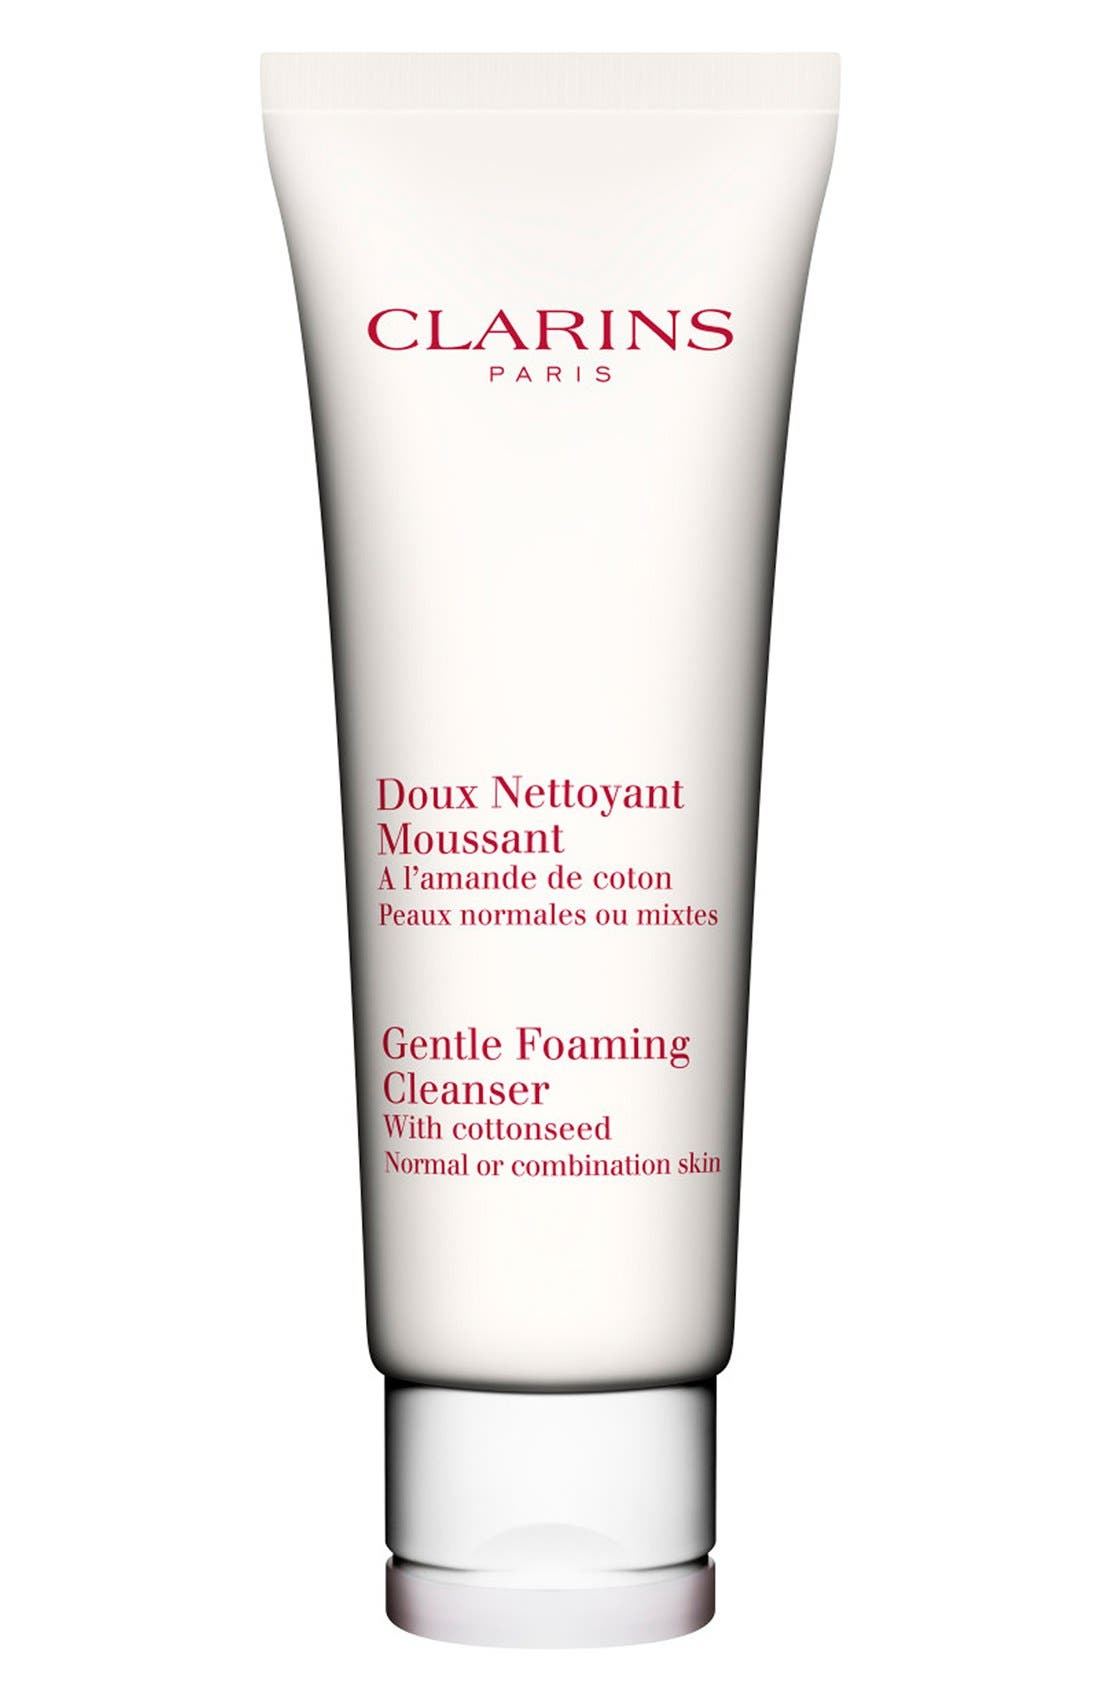 Clarins Gentle Foaming Cleanser with Cottonseed for Normal/Combination Skin Types